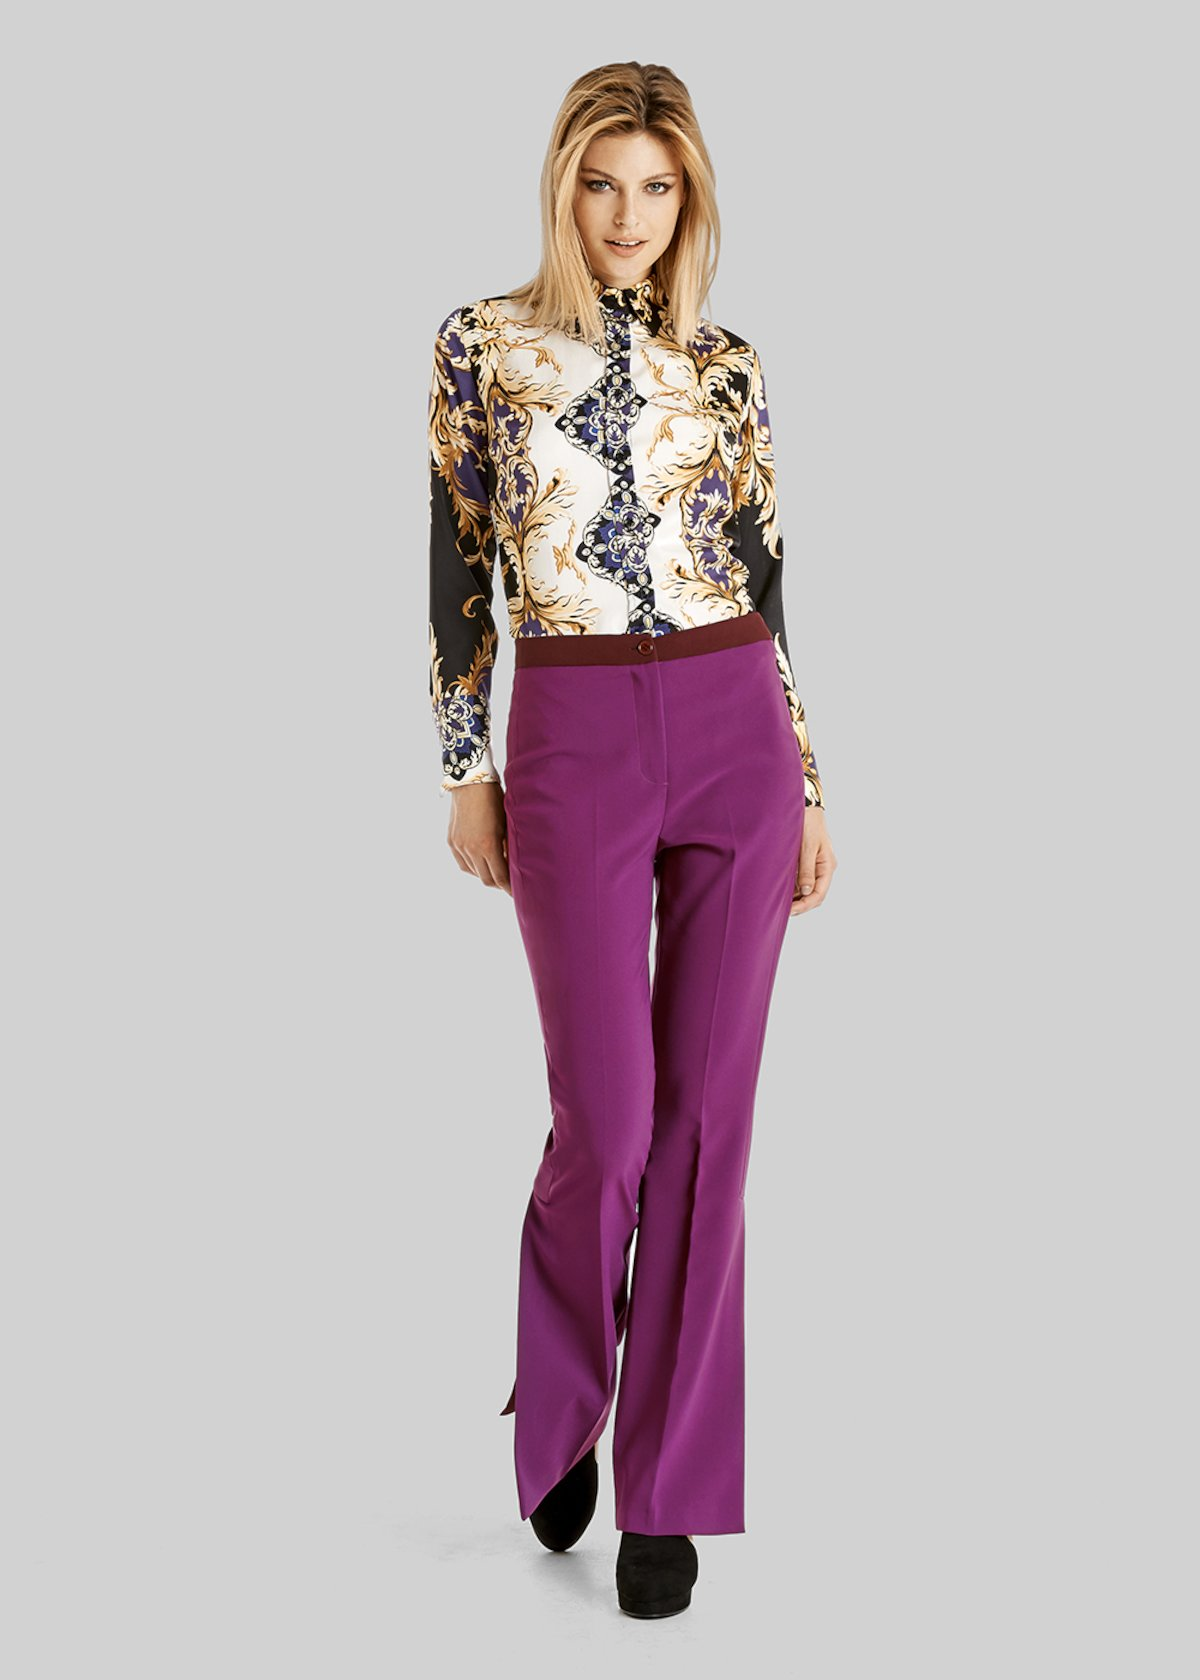 Cled shirt with violet baroque style pattern - White / Violet Fantasia